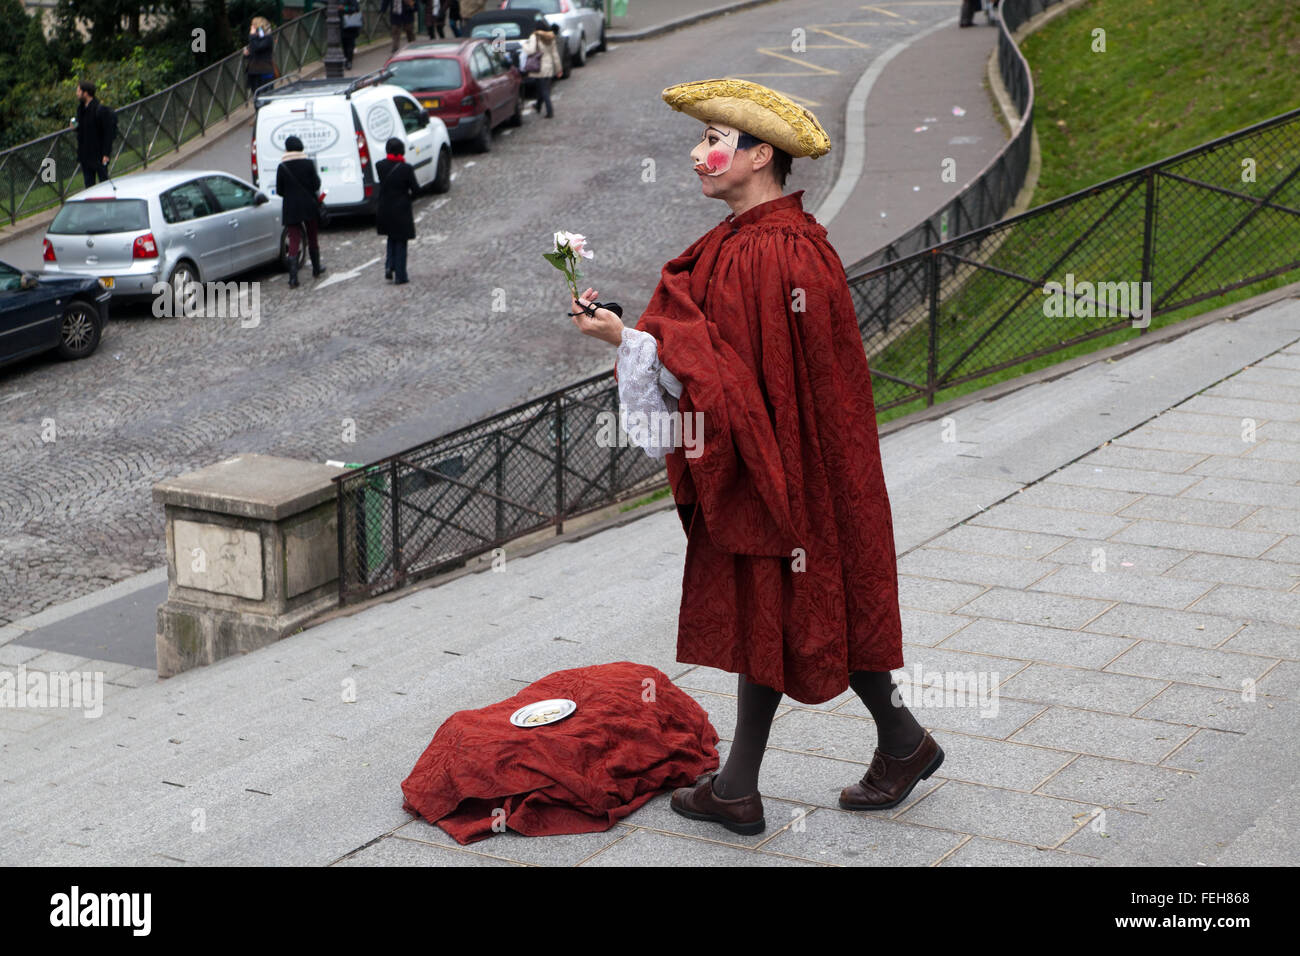 Mime artist performing on steps in front of the Sacre Coeur cathedral in Paris, France. - Stock Image